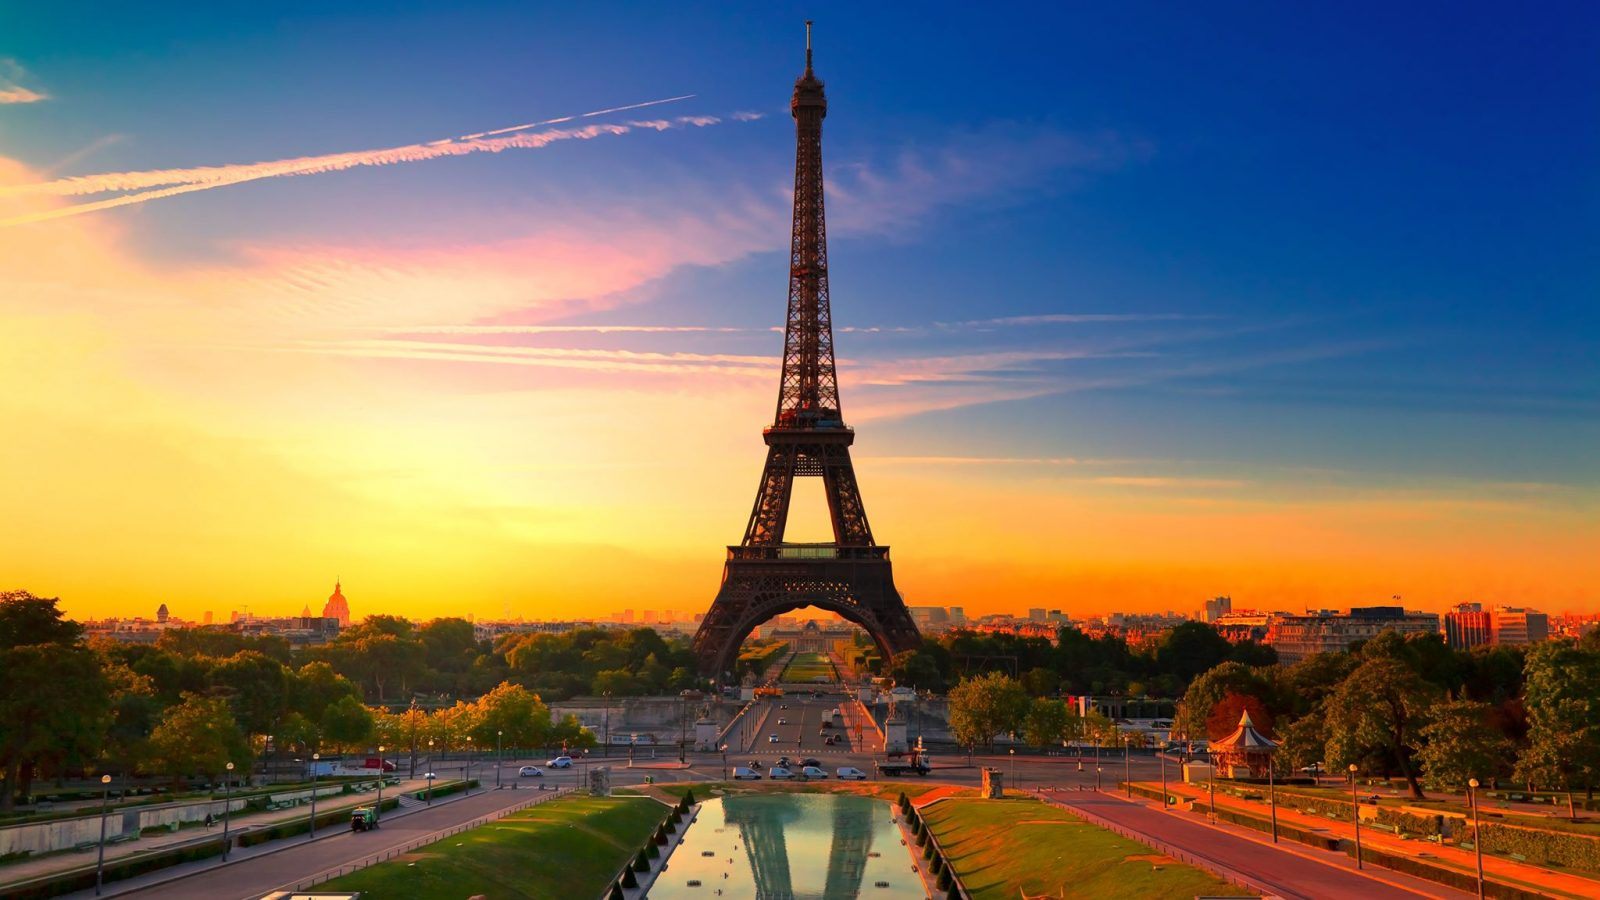 the best vies in Paris from the Trocadero